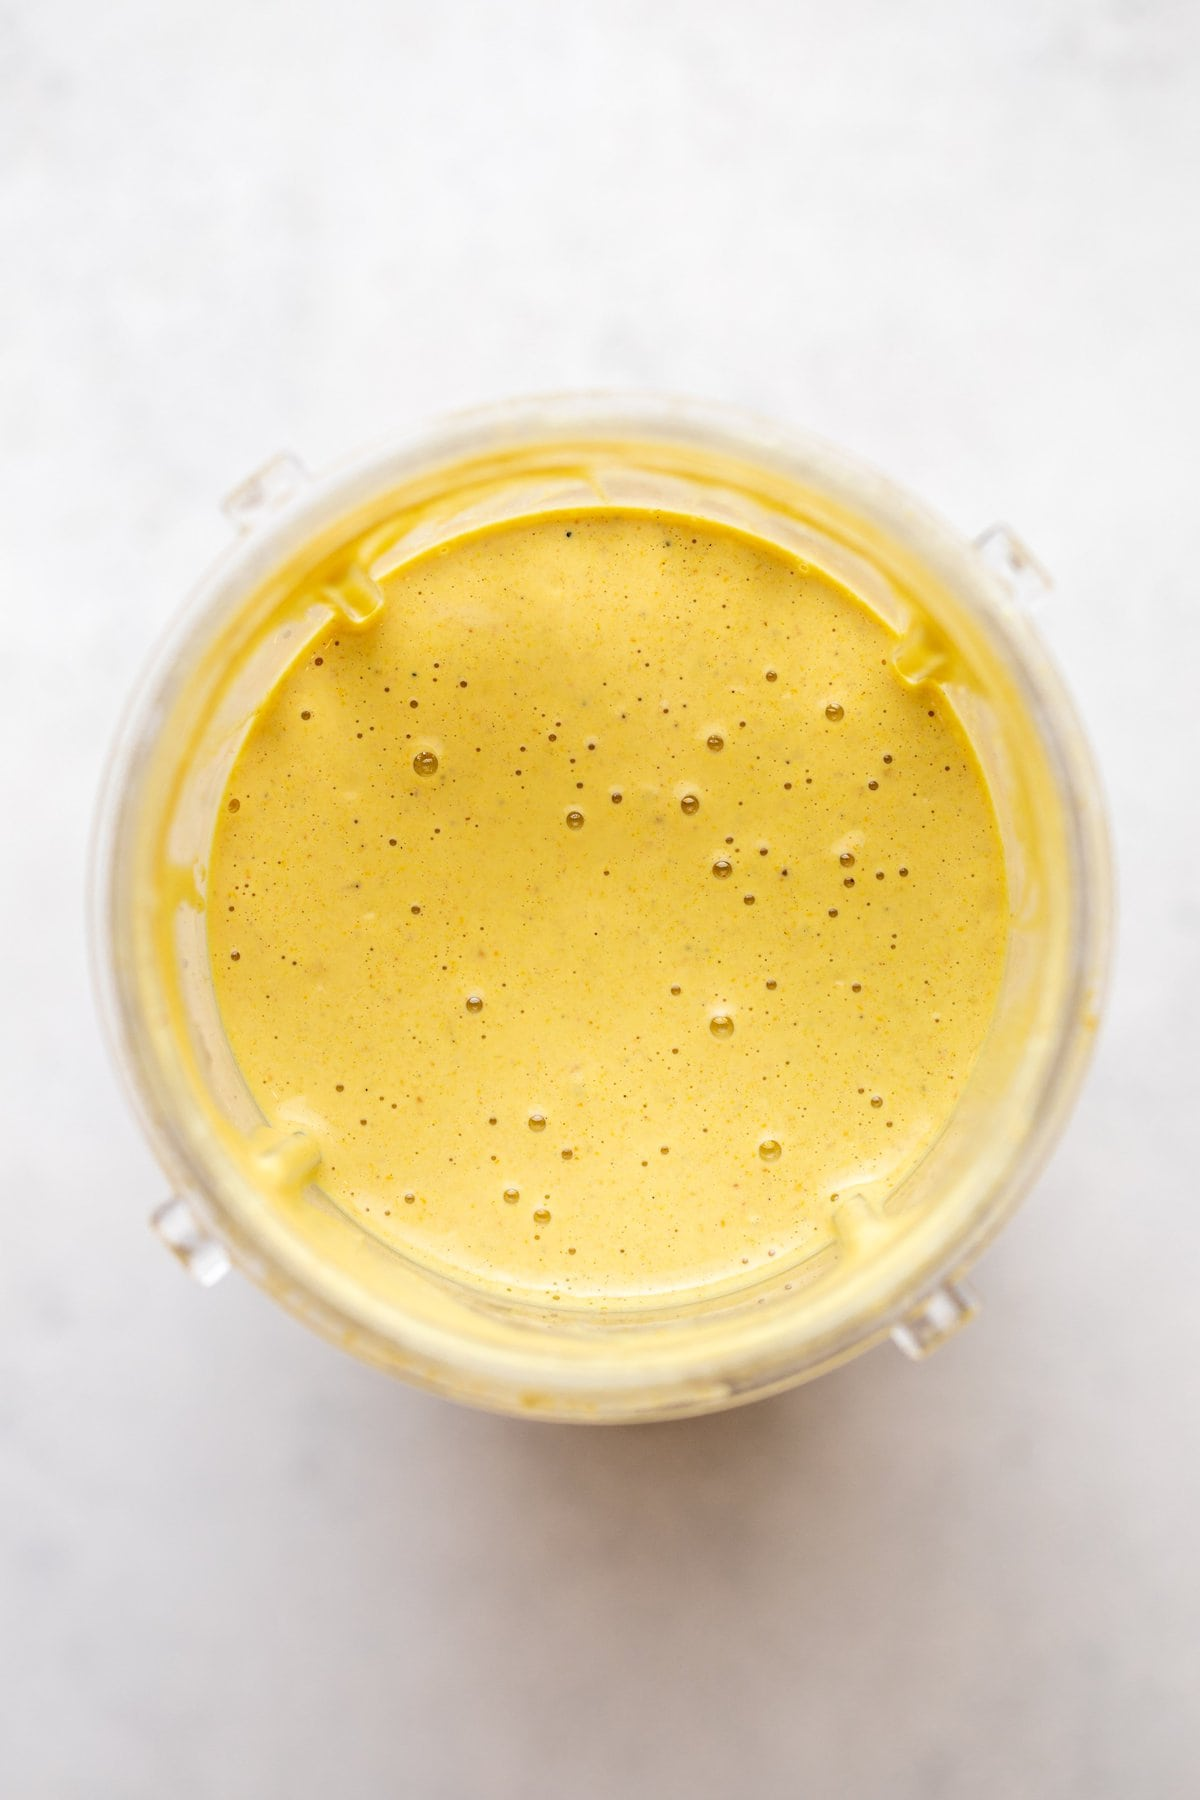 curry tahini dressing blended in bullet blender container on white background